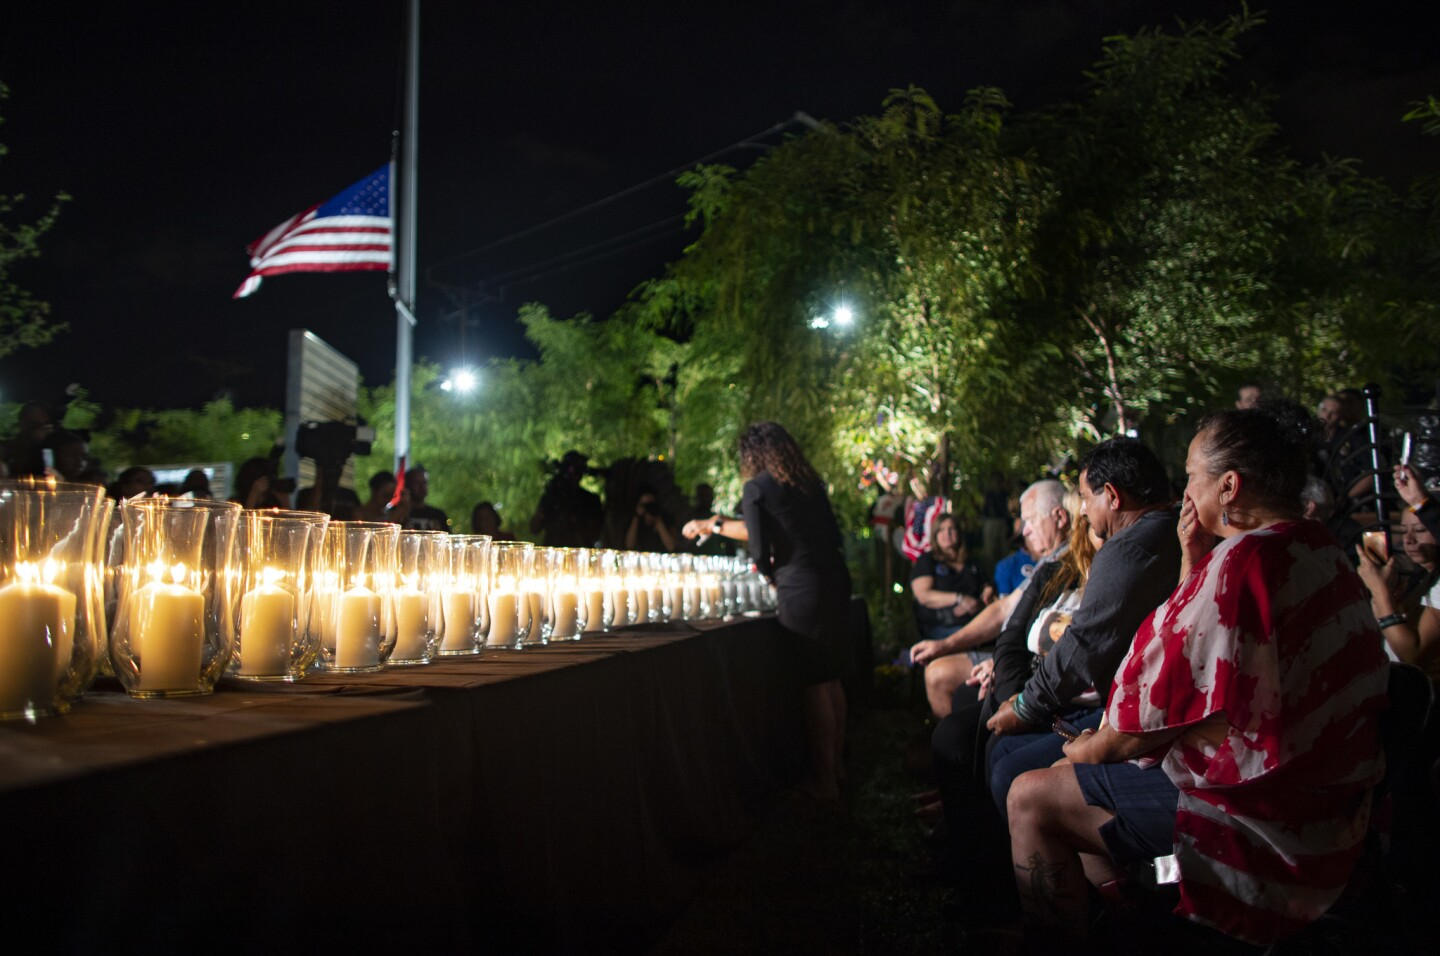 Family members grieve as the 58 victims' names are read aloud and candles are lit Oct. 1 on the one-year anniversary of the mass shooting in Las Vegas, Nevada.